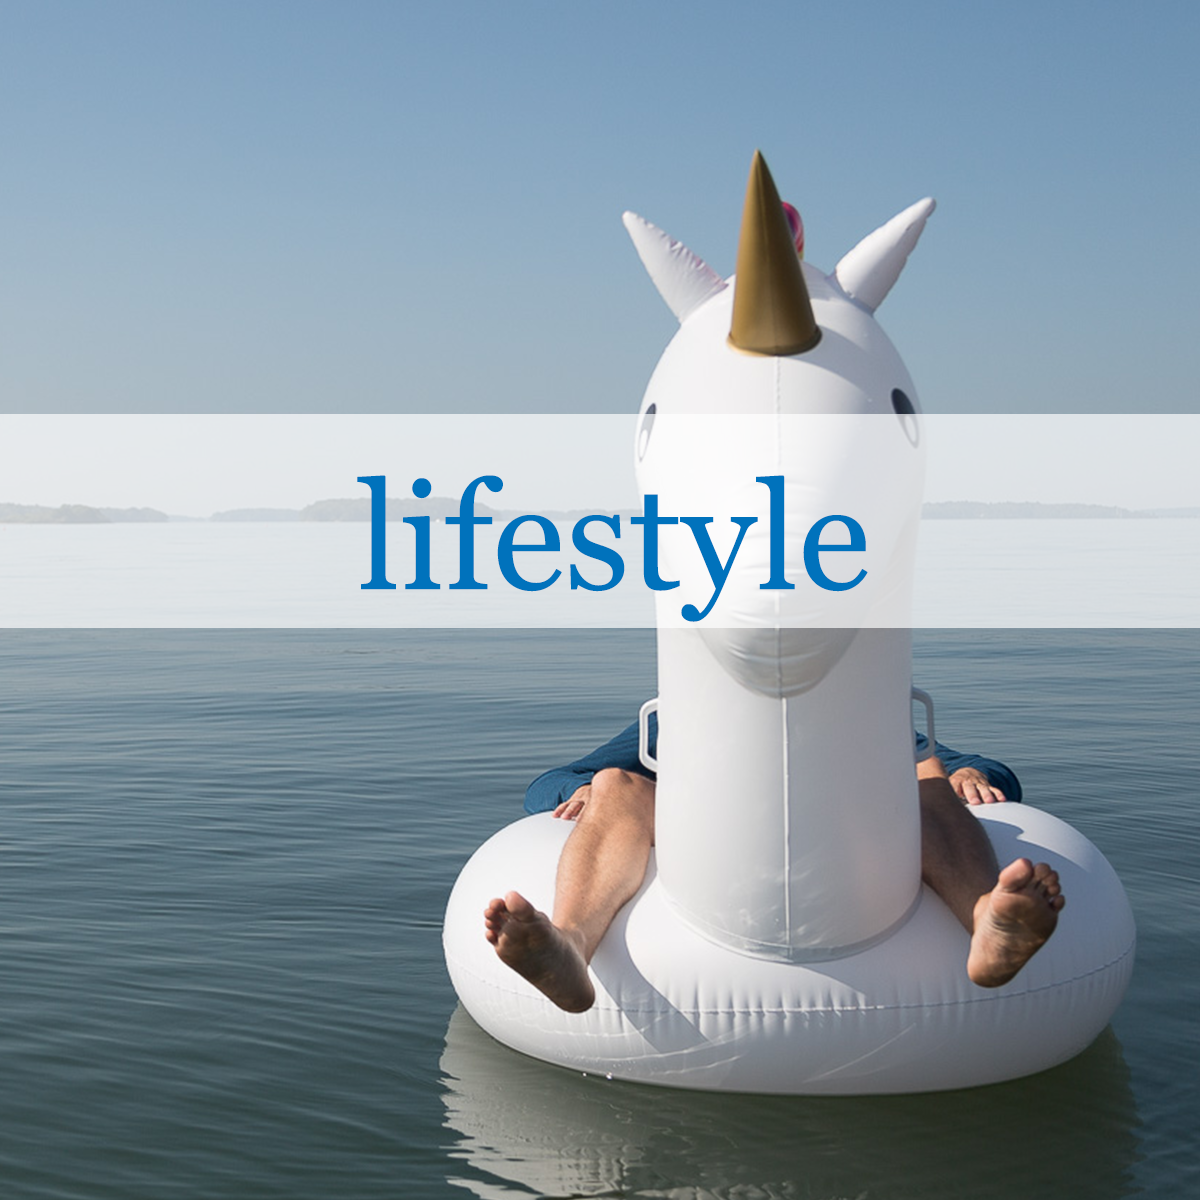 Welcome-Lifestyle-Photo-Offcentered.png